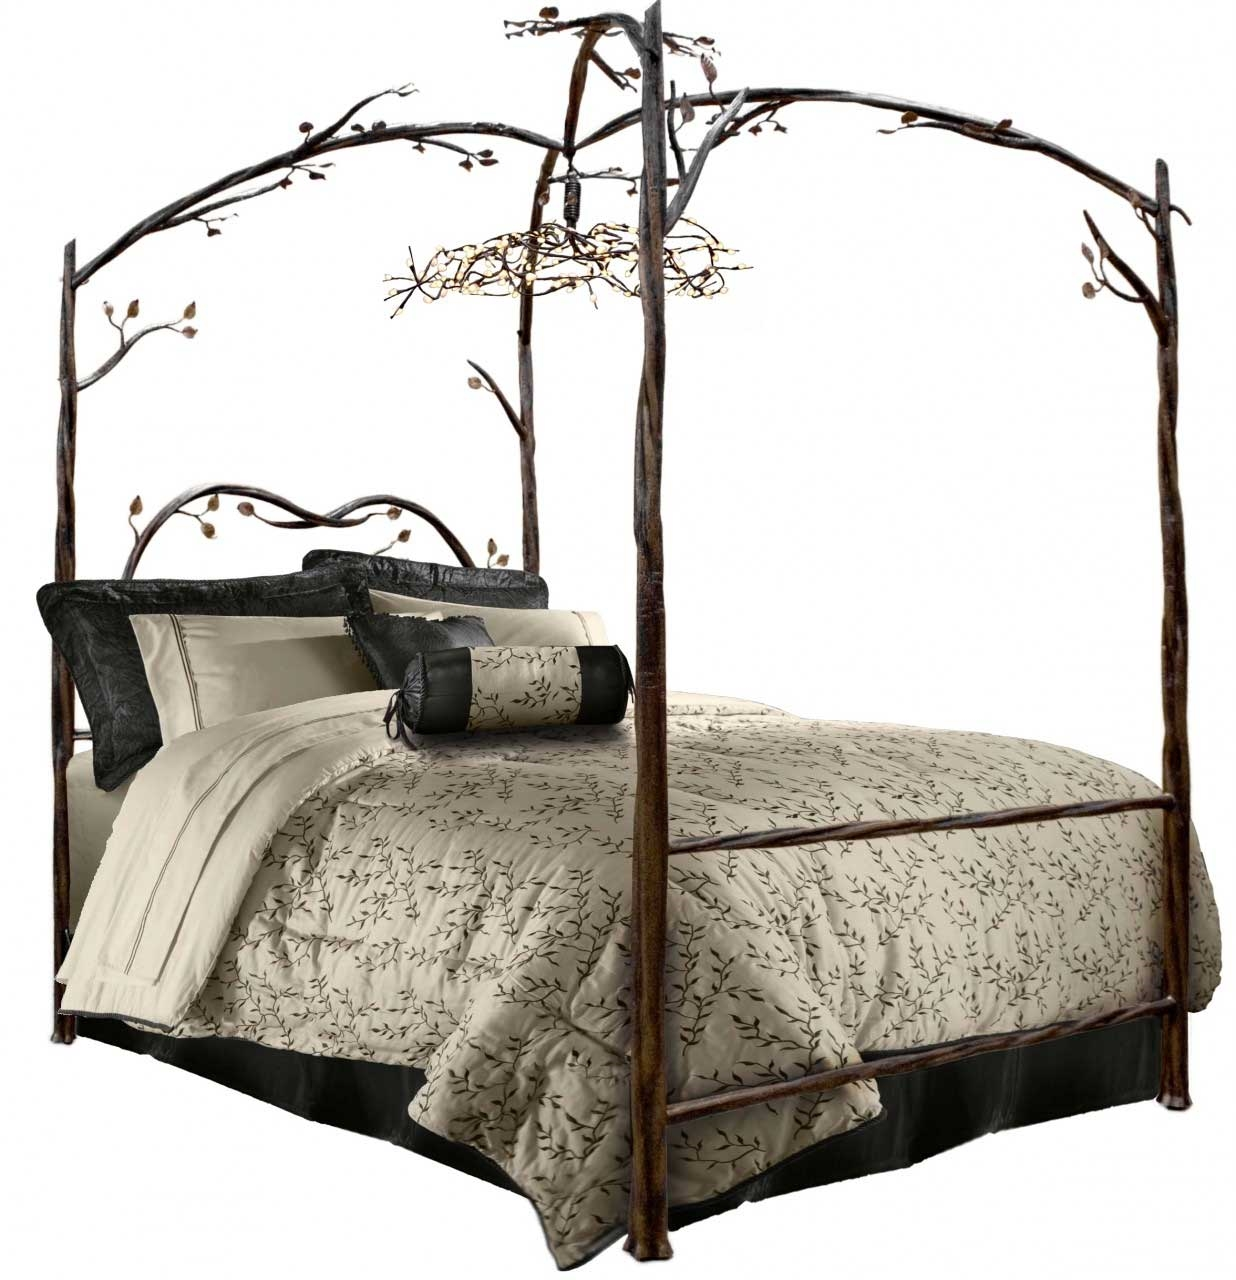 Wrought Iron Canopy Bed - Forest Canopy Bed